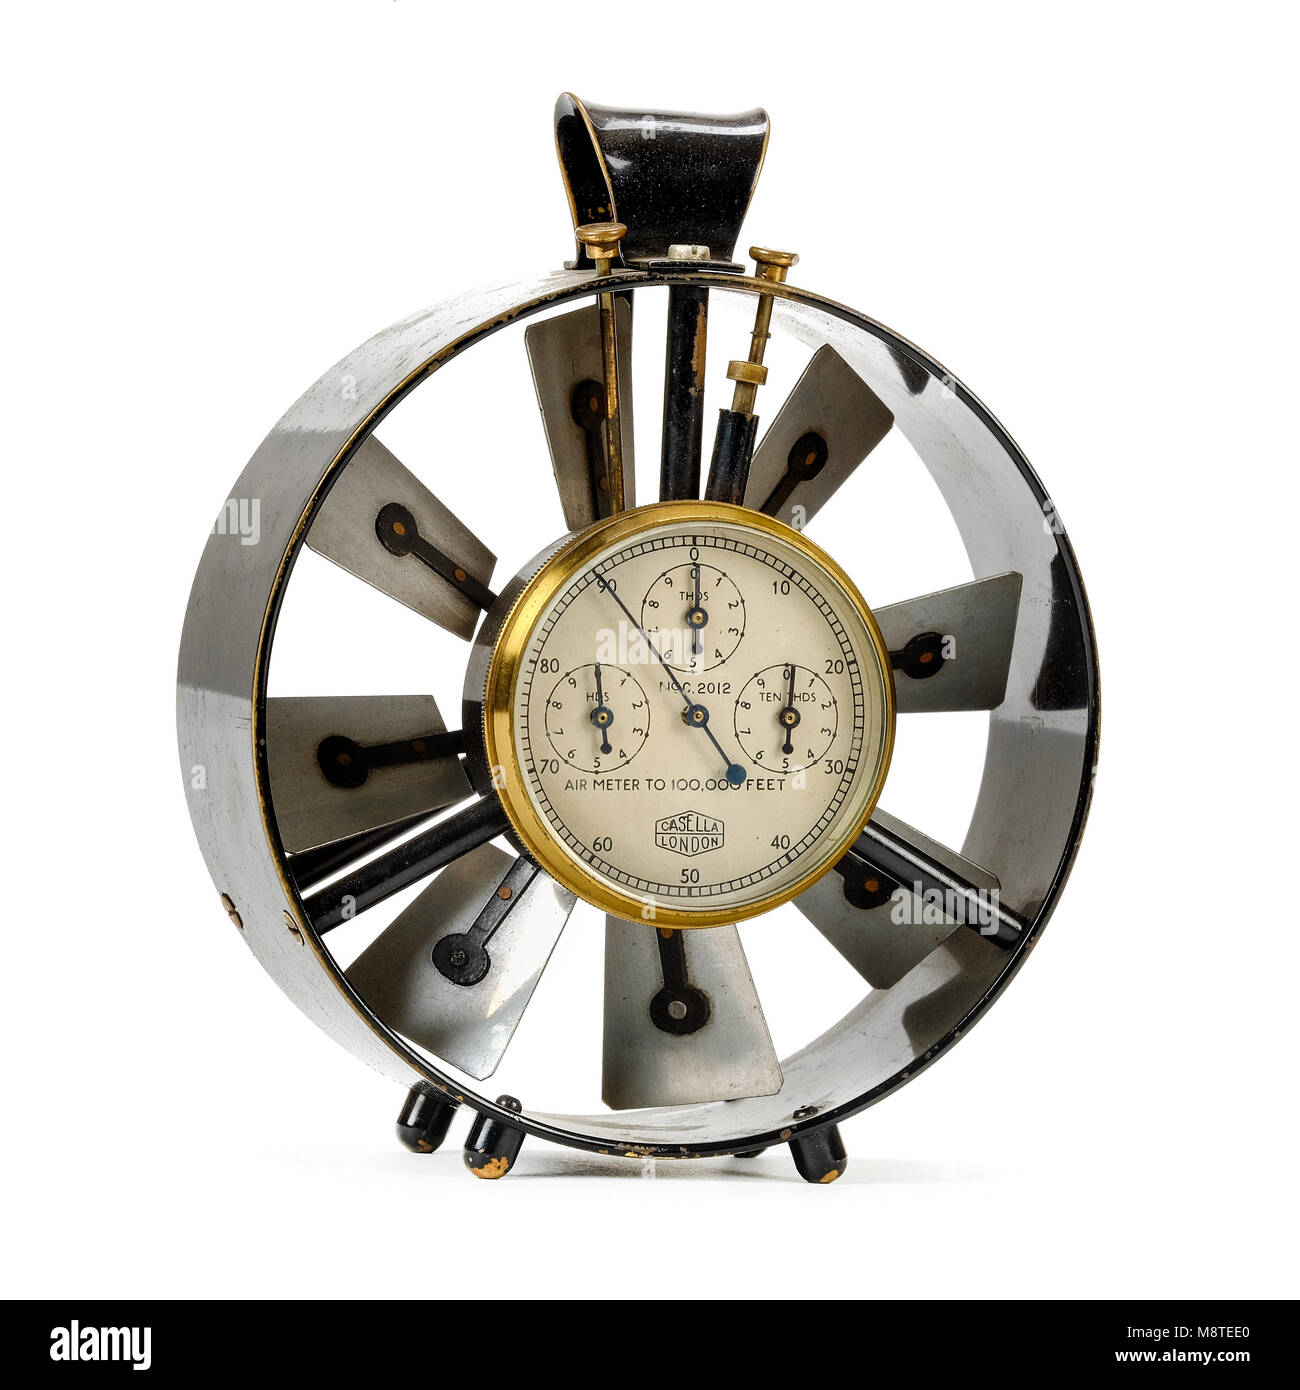 WW1 Royal Flying Corps vane anemometer / air meter made by Casella of London for measuring wind speed - Stock Image